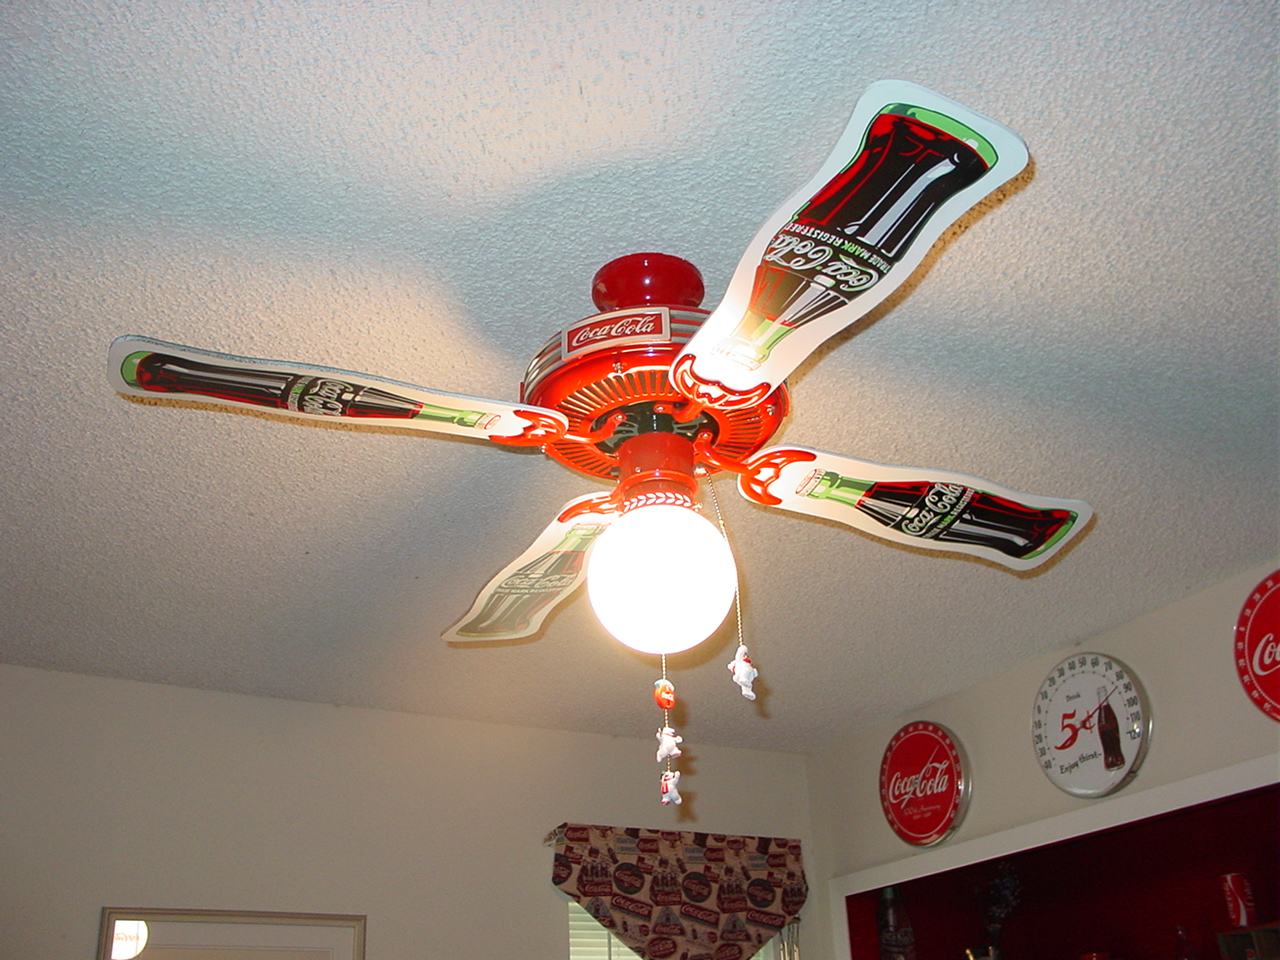 And a ceiling fan as well